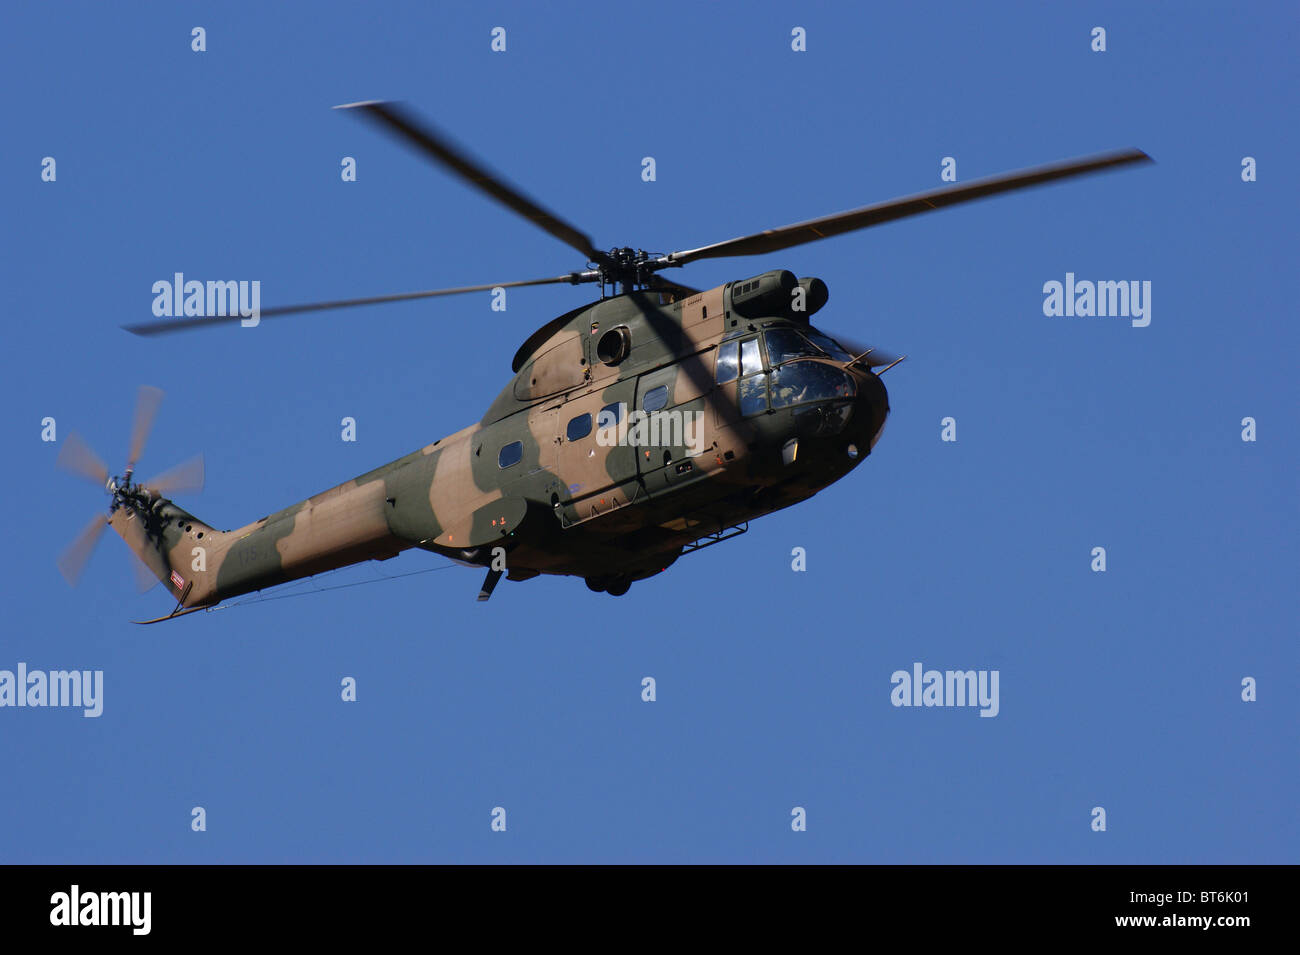 Puma Military helicopter - Stock Image